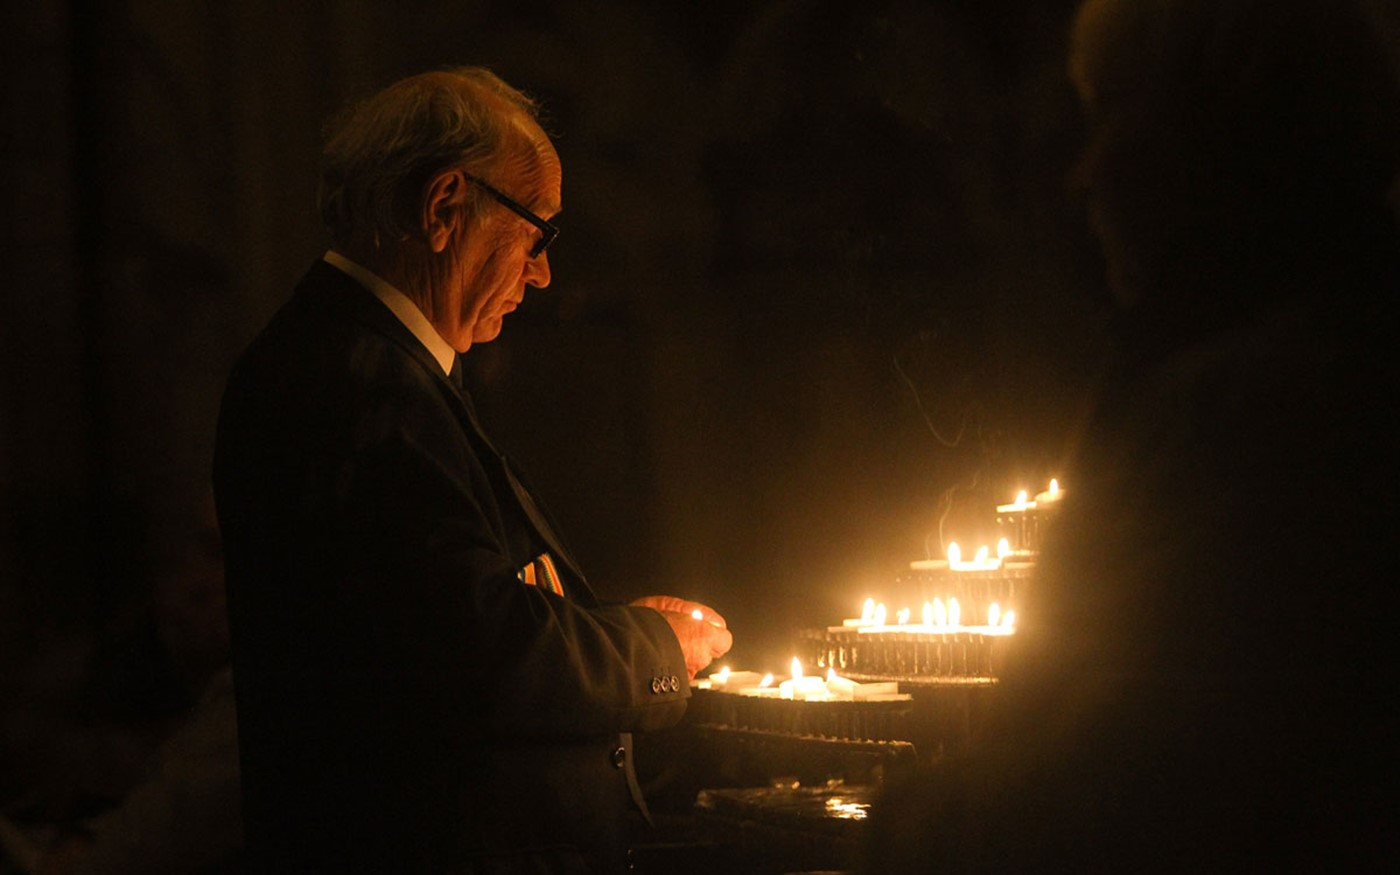 Members of the public attend the all-night Vigil and lit candles to remember the dead